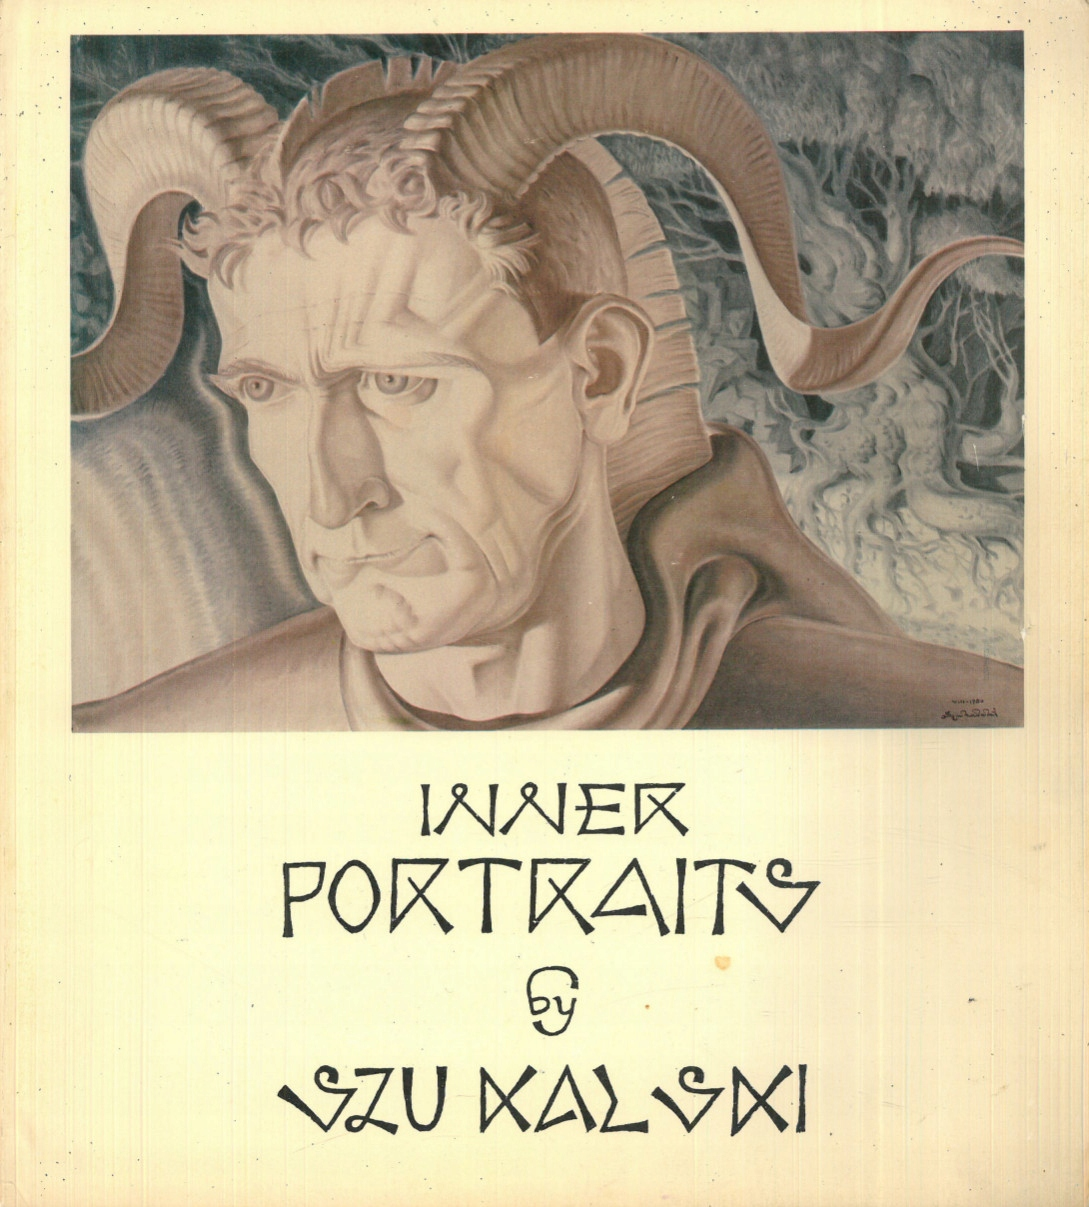 INNER PORTAITS by SZUKALSKI, 1982